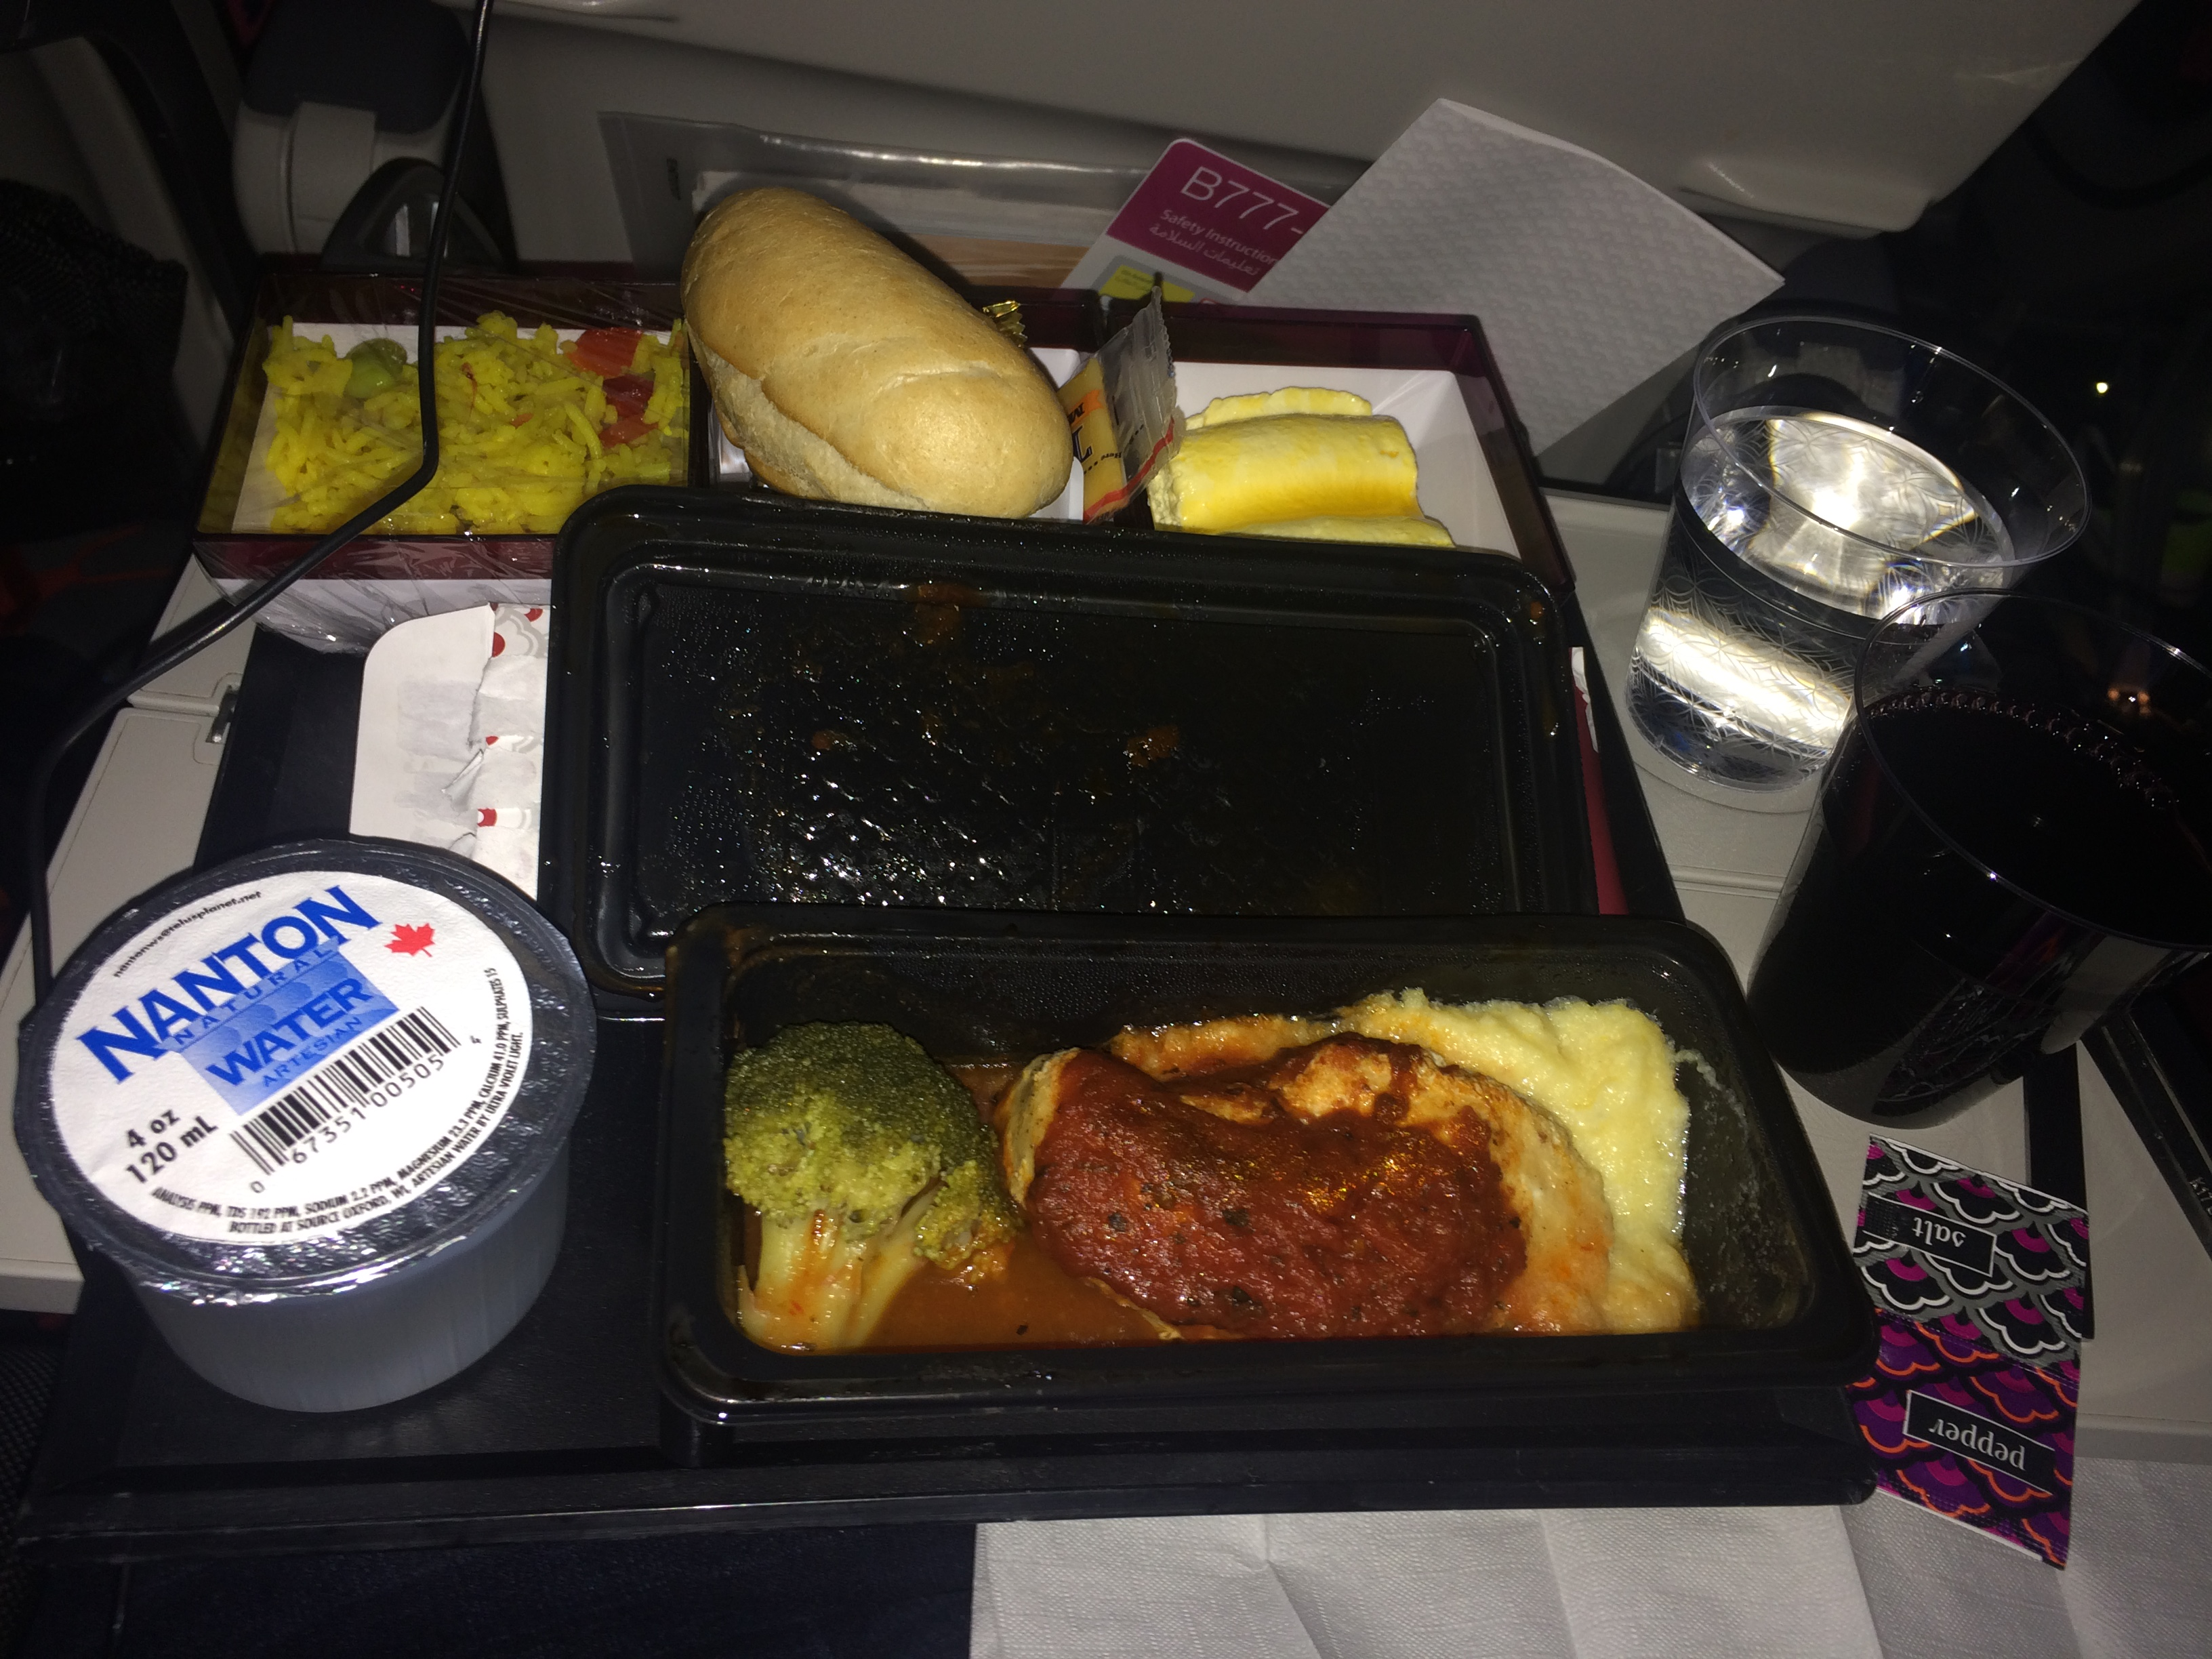 qatar airways chicken bbq meal.JPG